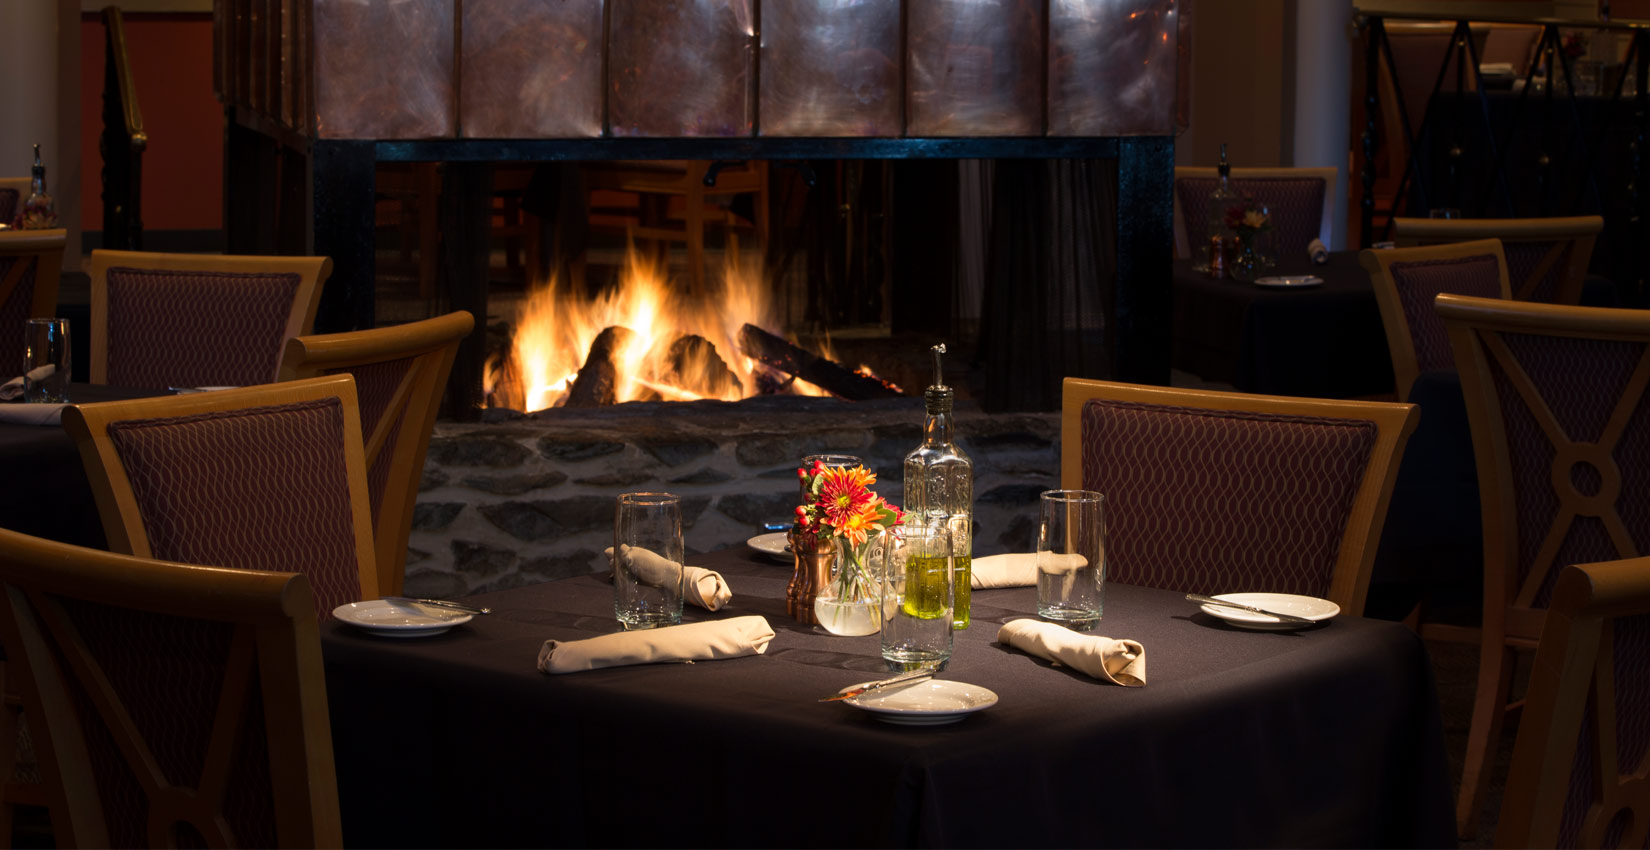 cozy winter dining by the fireplace at Wintergreen Resort